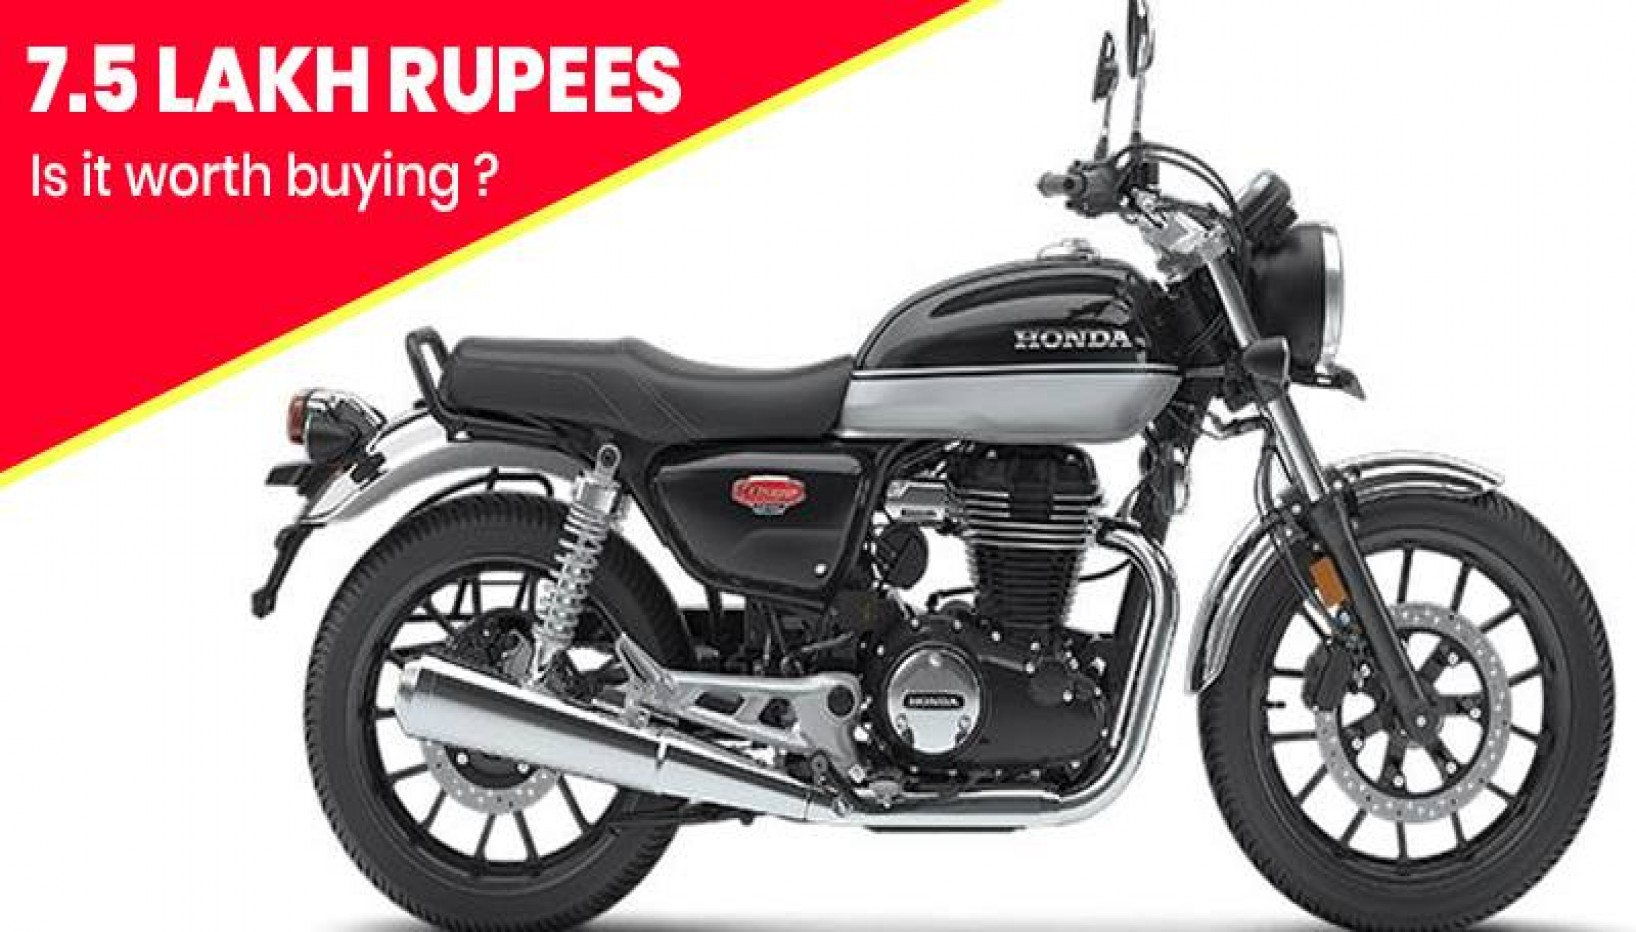 The Honda H'ness CB350 Is Finally Coming To Nepal. Here Is All You Need To Know About It